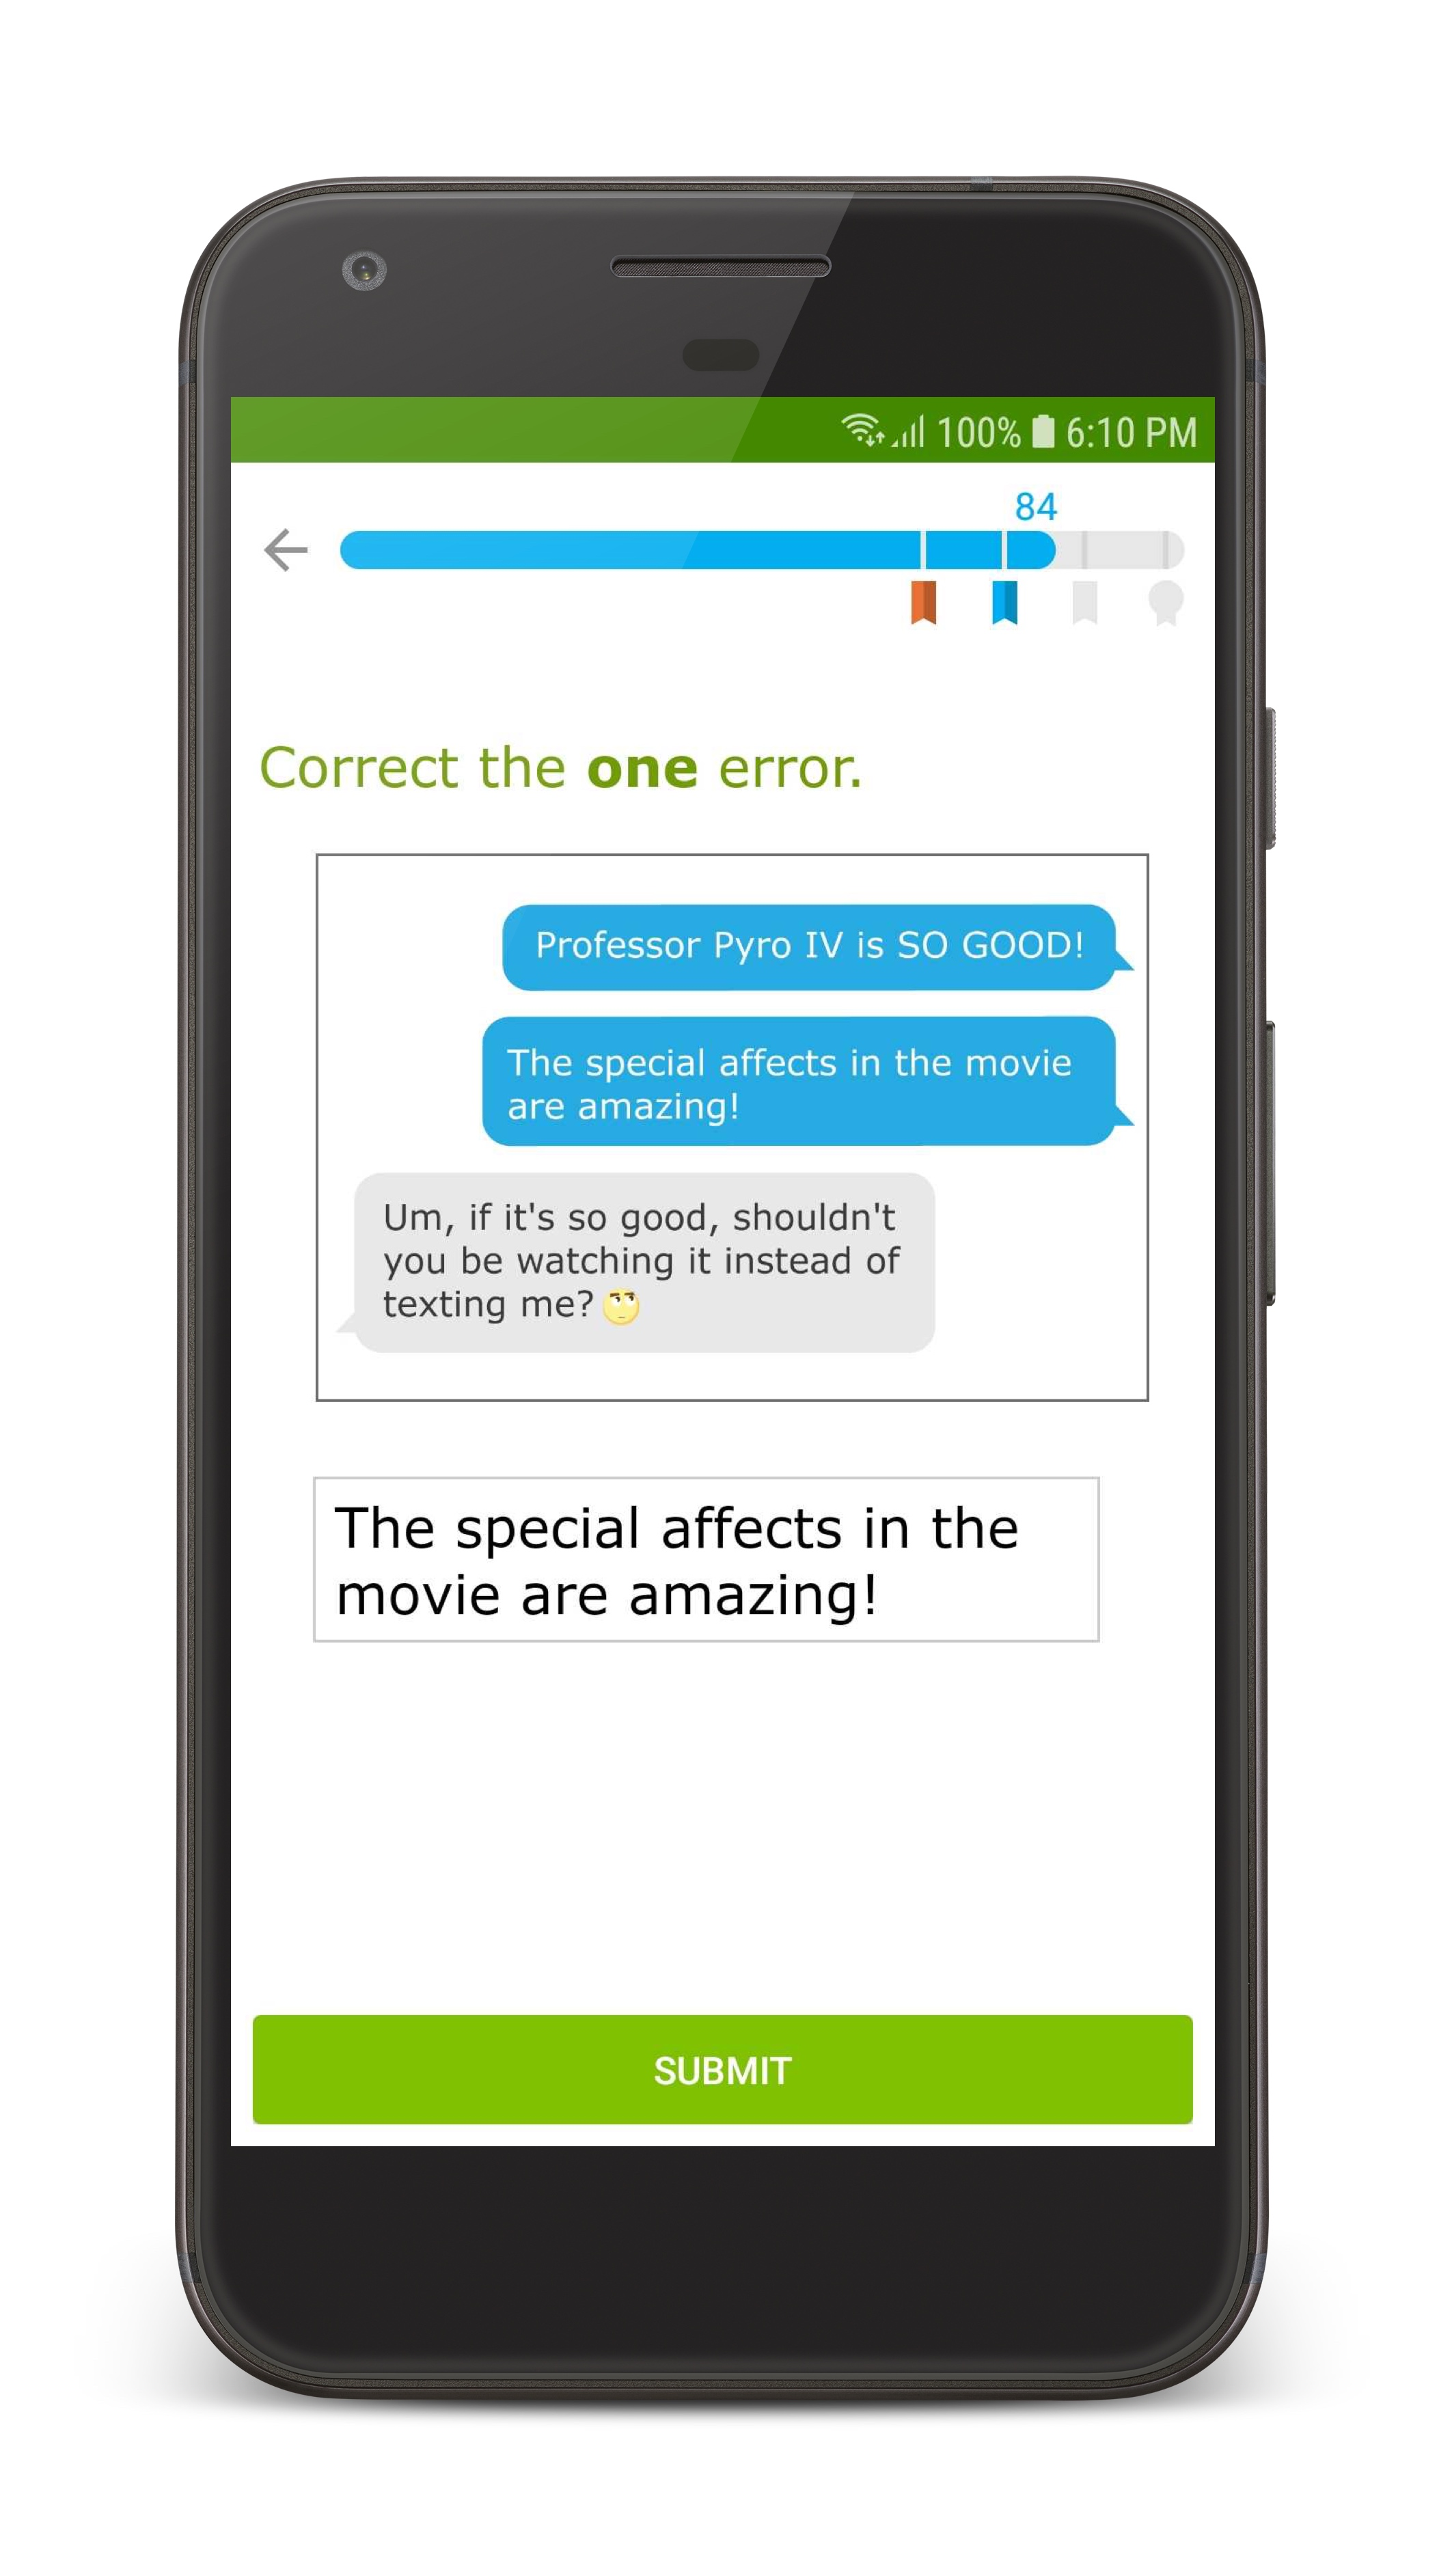 Android users rejoice! The IXL app is now available for Android phones